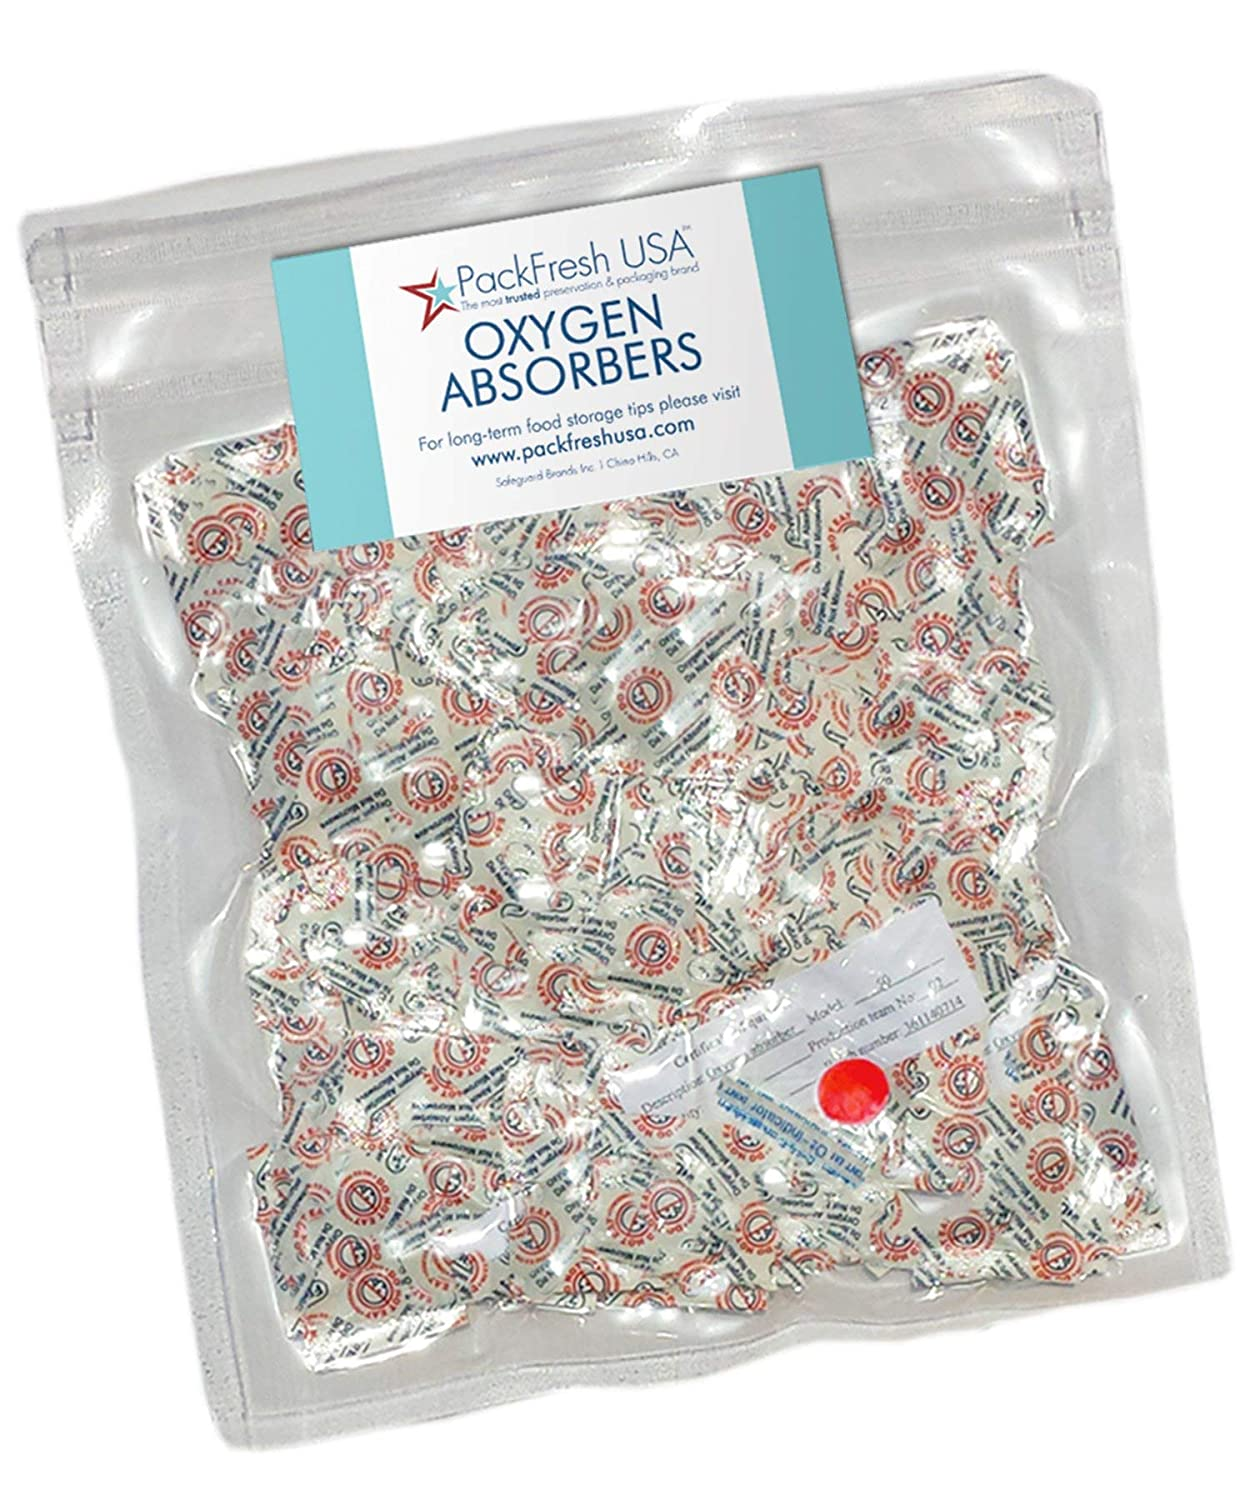 50cc Oxygen Absorbers for Food Storage (200) with PackFreshUSA LTFS Guide